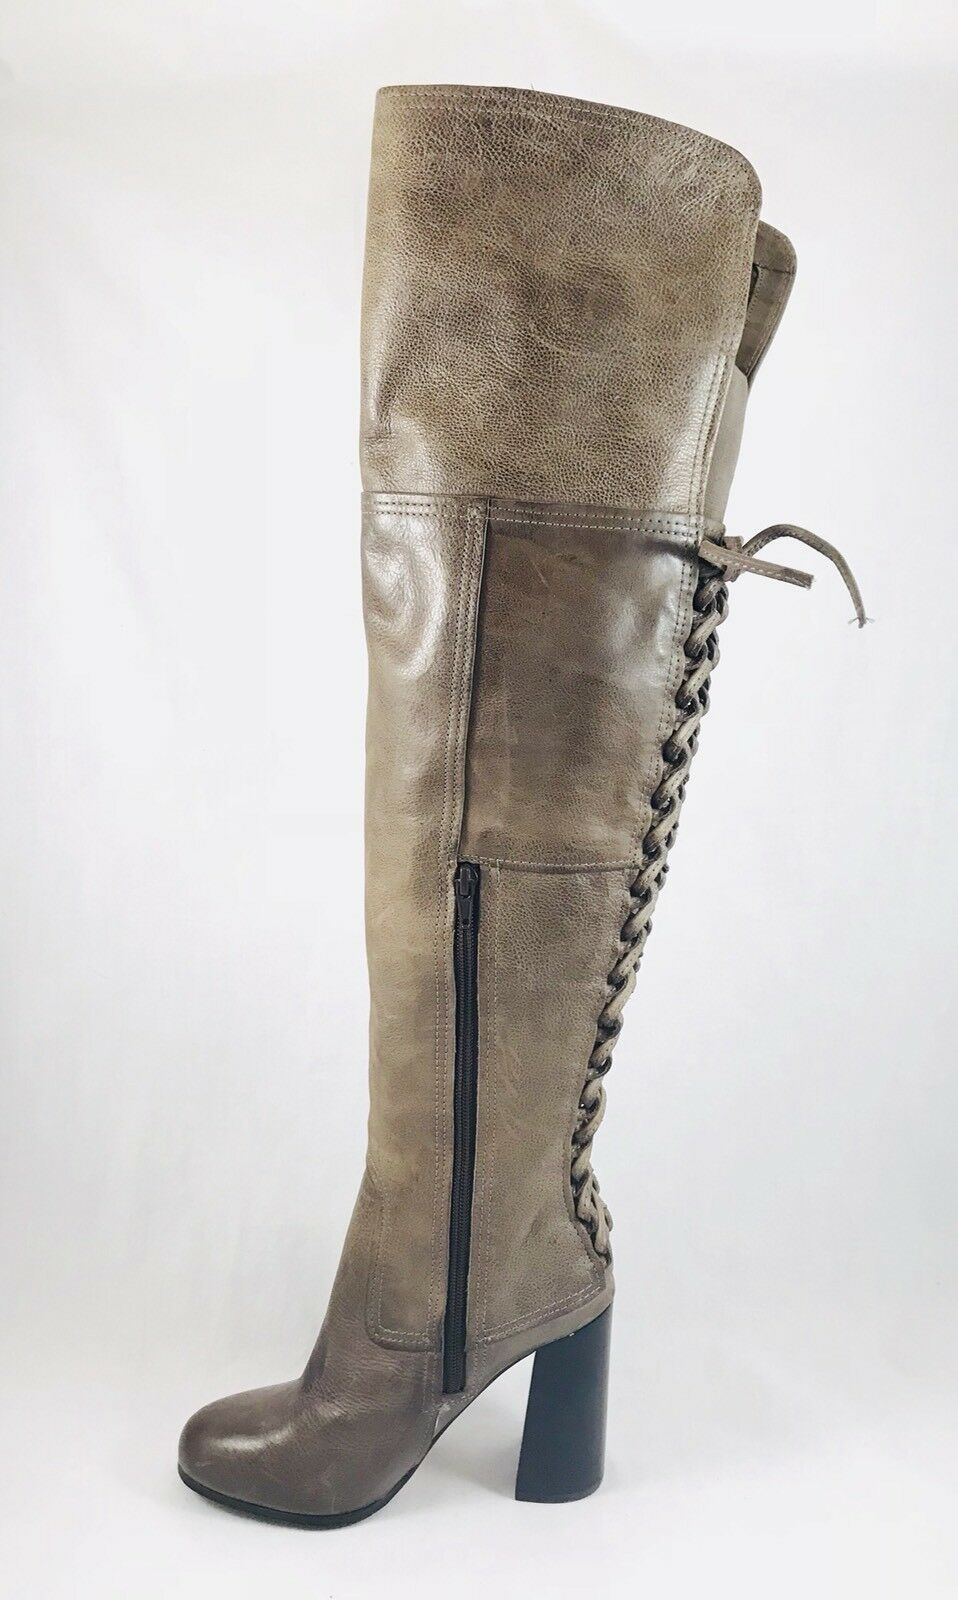 Vince Camuto Tolla Laced Over the Knee Boots Grey Distressed Leather Size 6